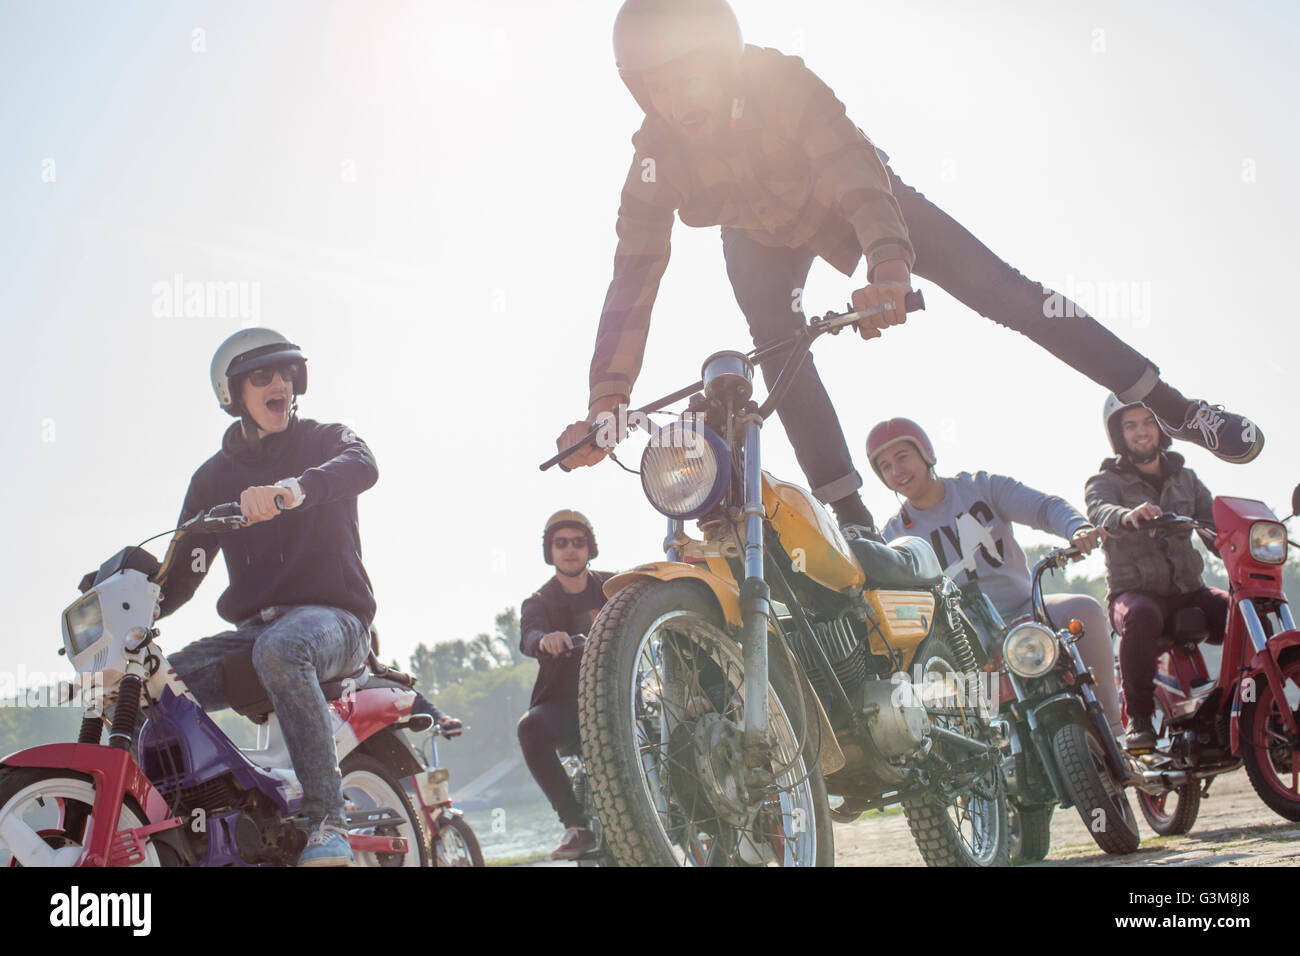 Group of friends riding mopeds along road, man in mid air, doing stunt - Stock Image